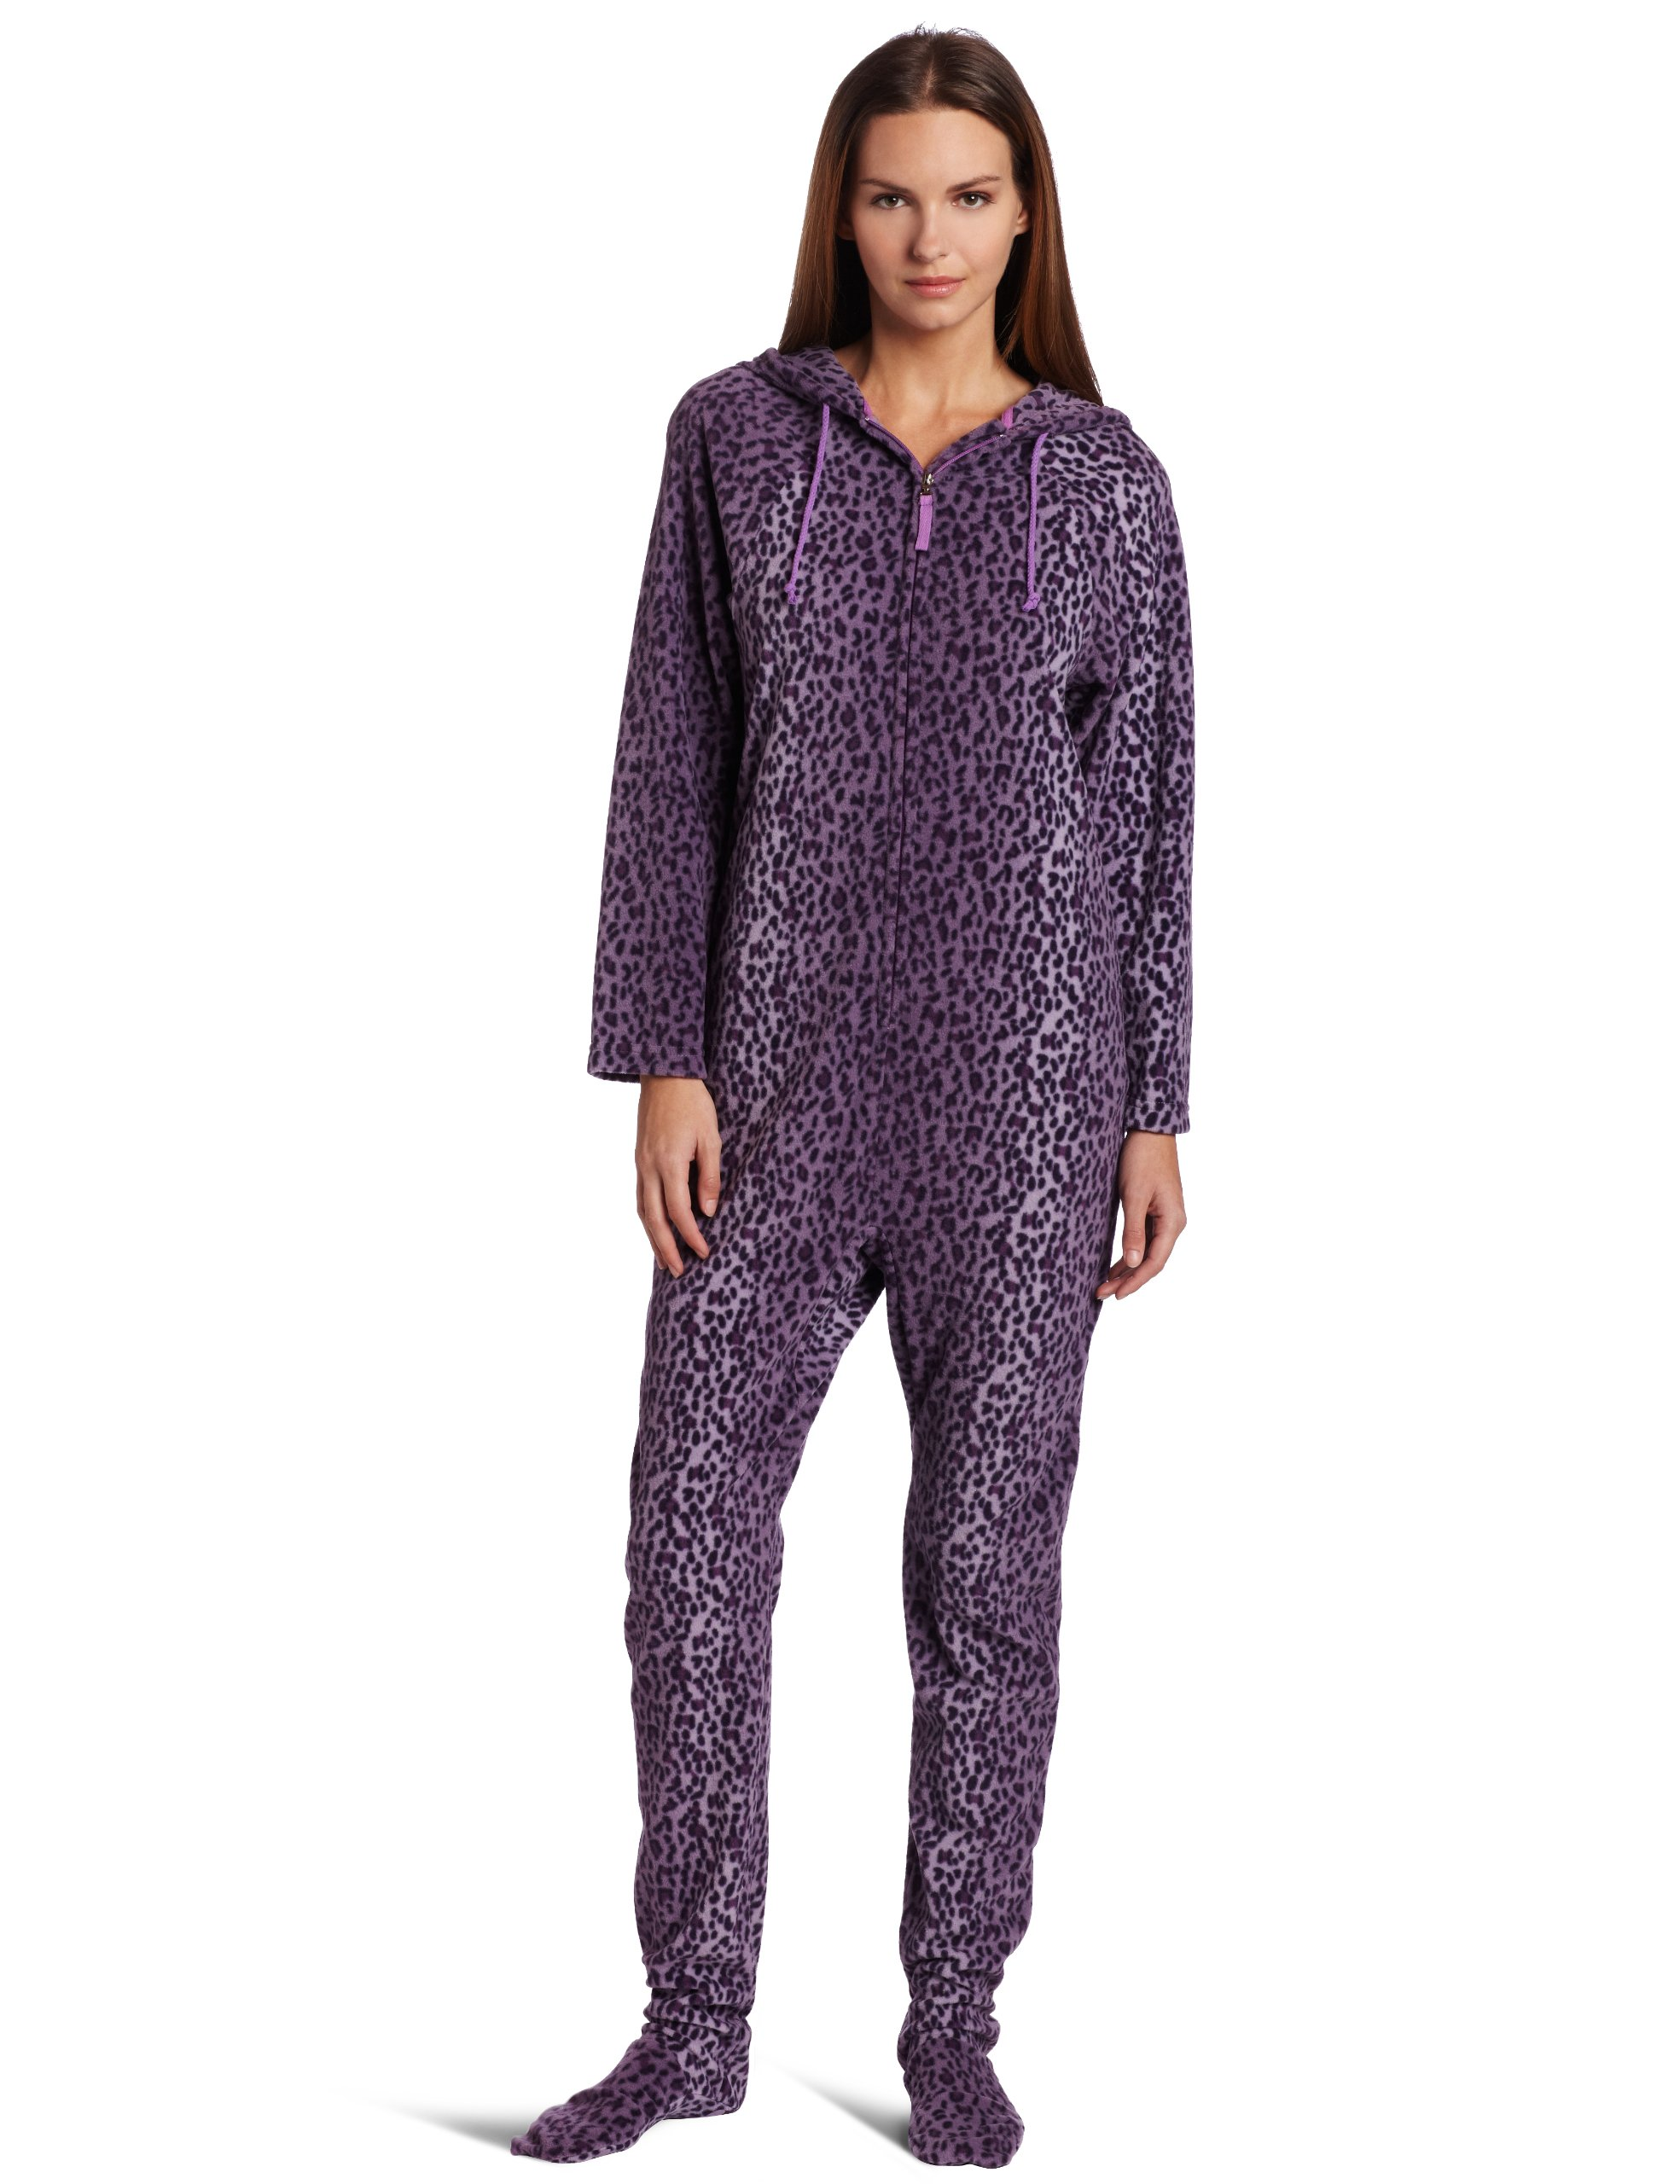 Casual Women's One Piece Footed Pajama